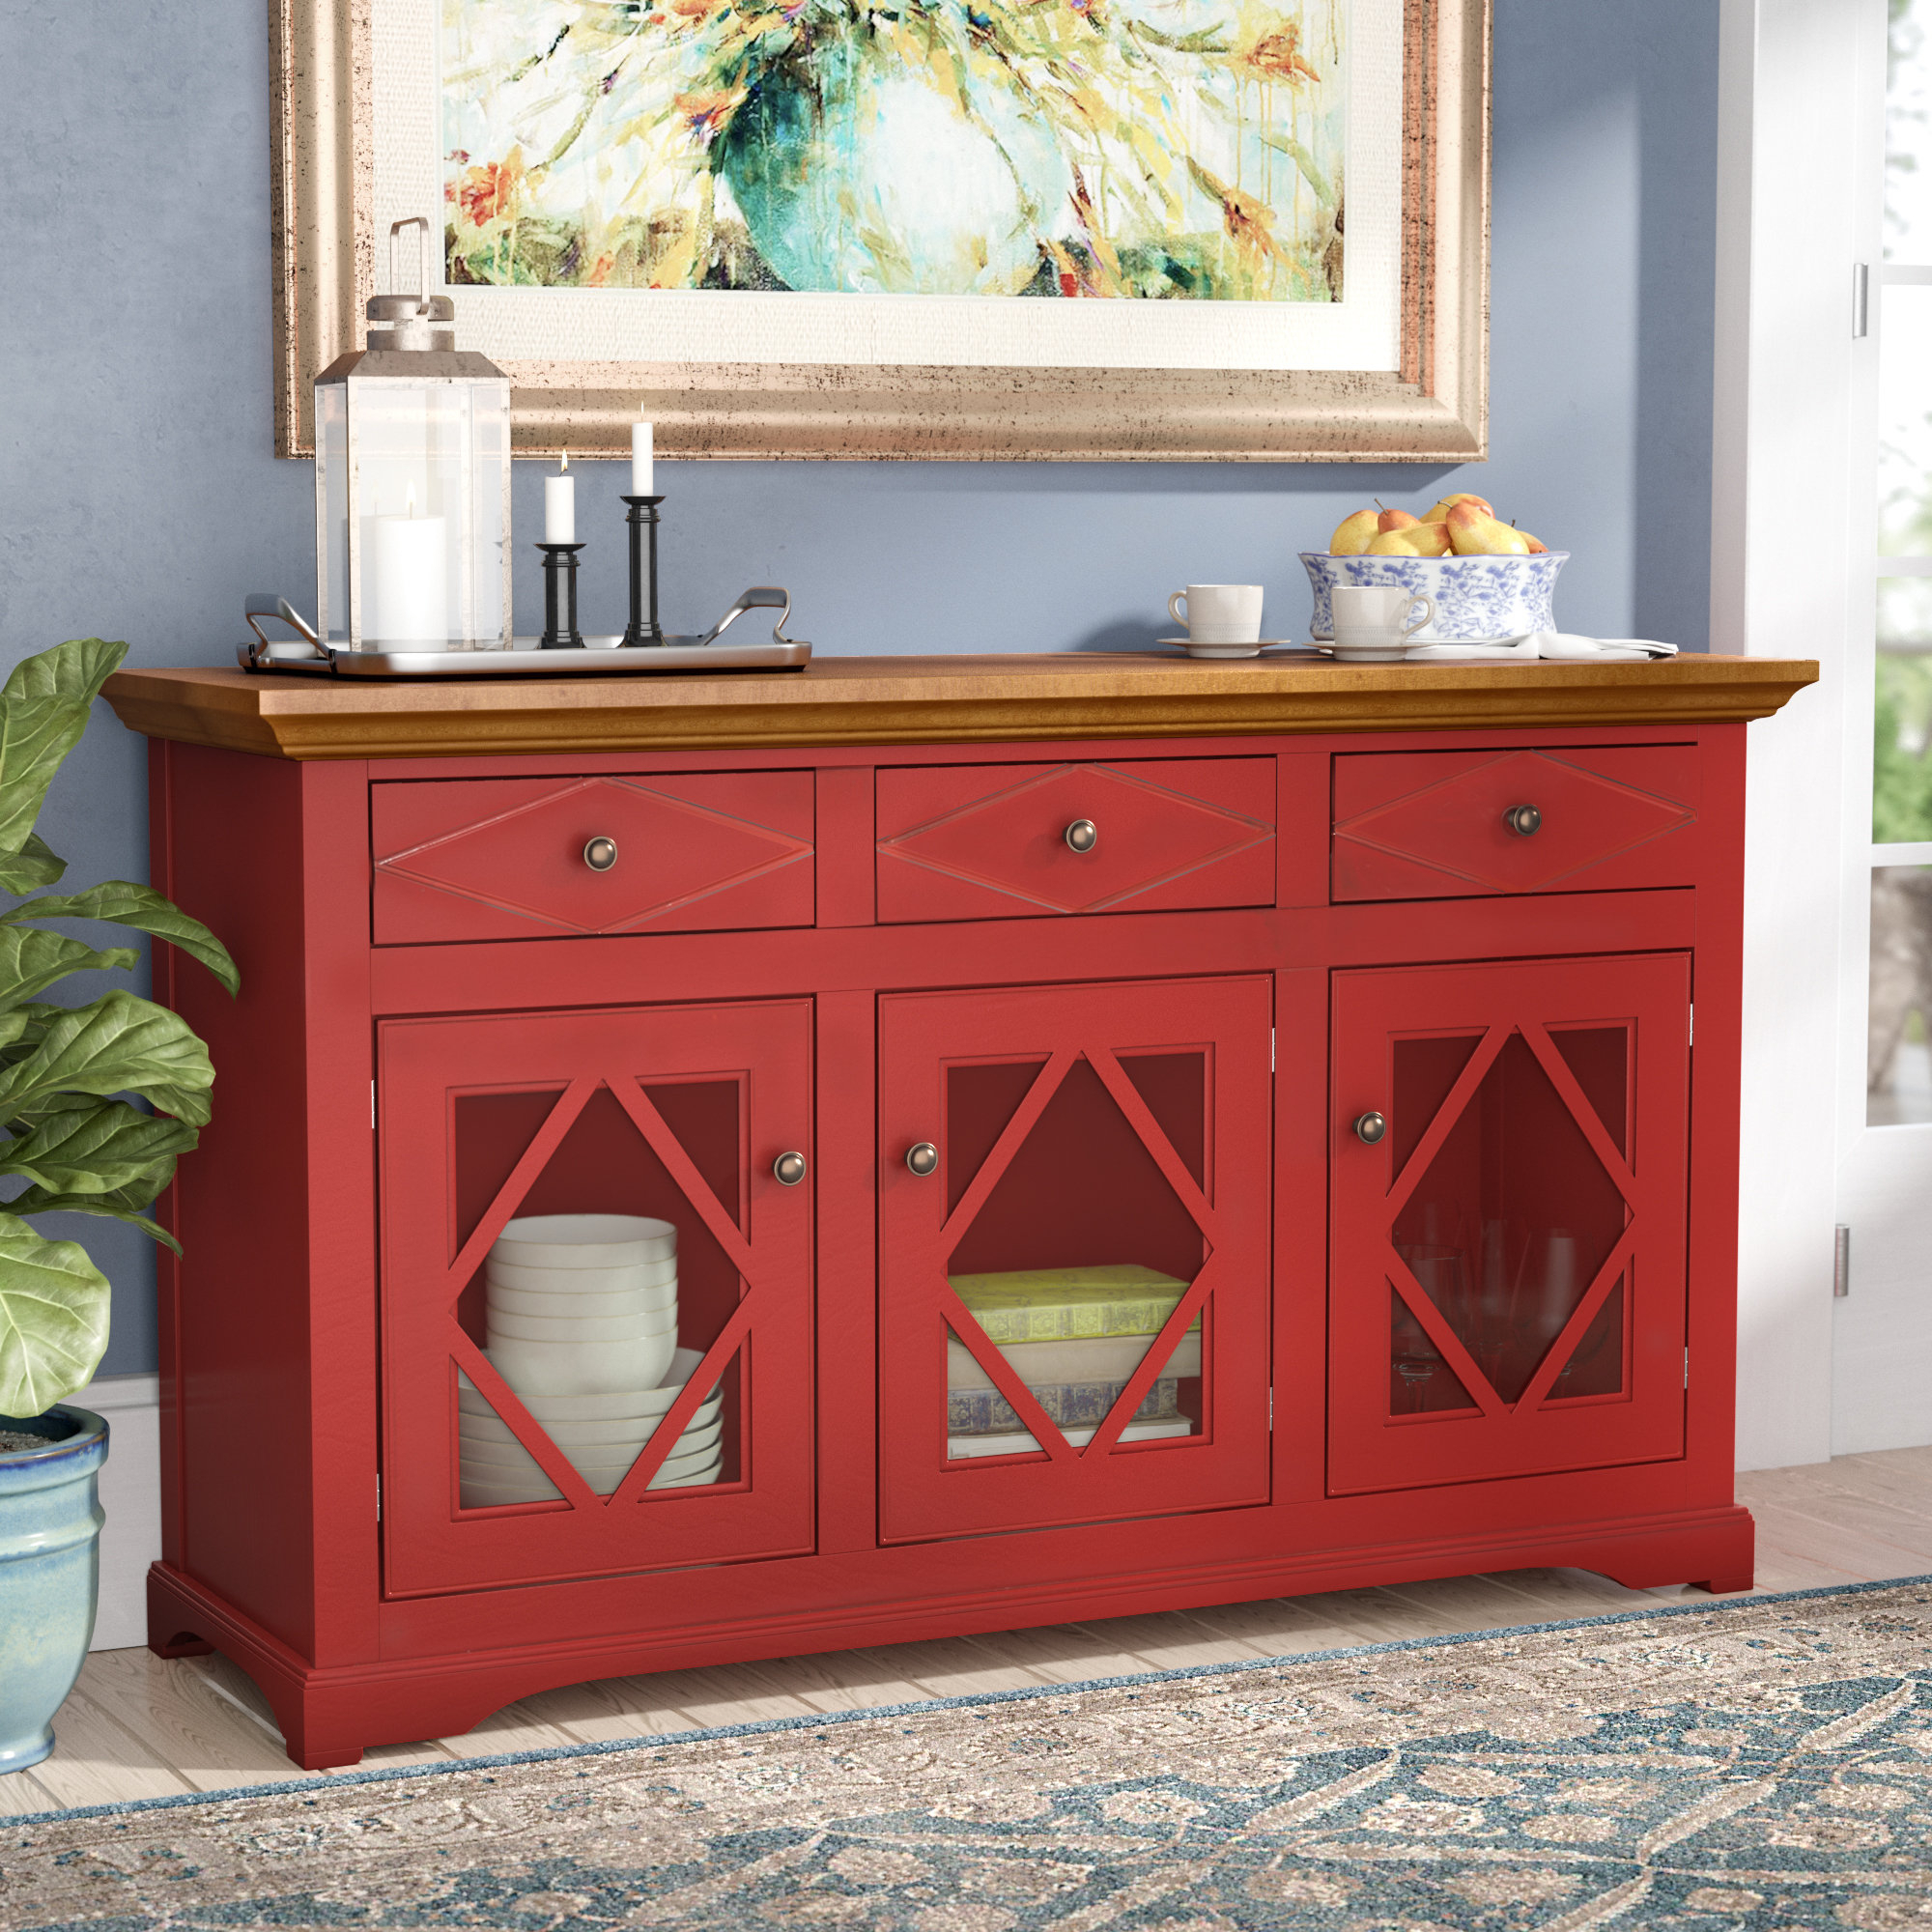 Inspiration about Velazco Sideboard Regarding Most Recent Velazco Sideboards (#1 of 20)